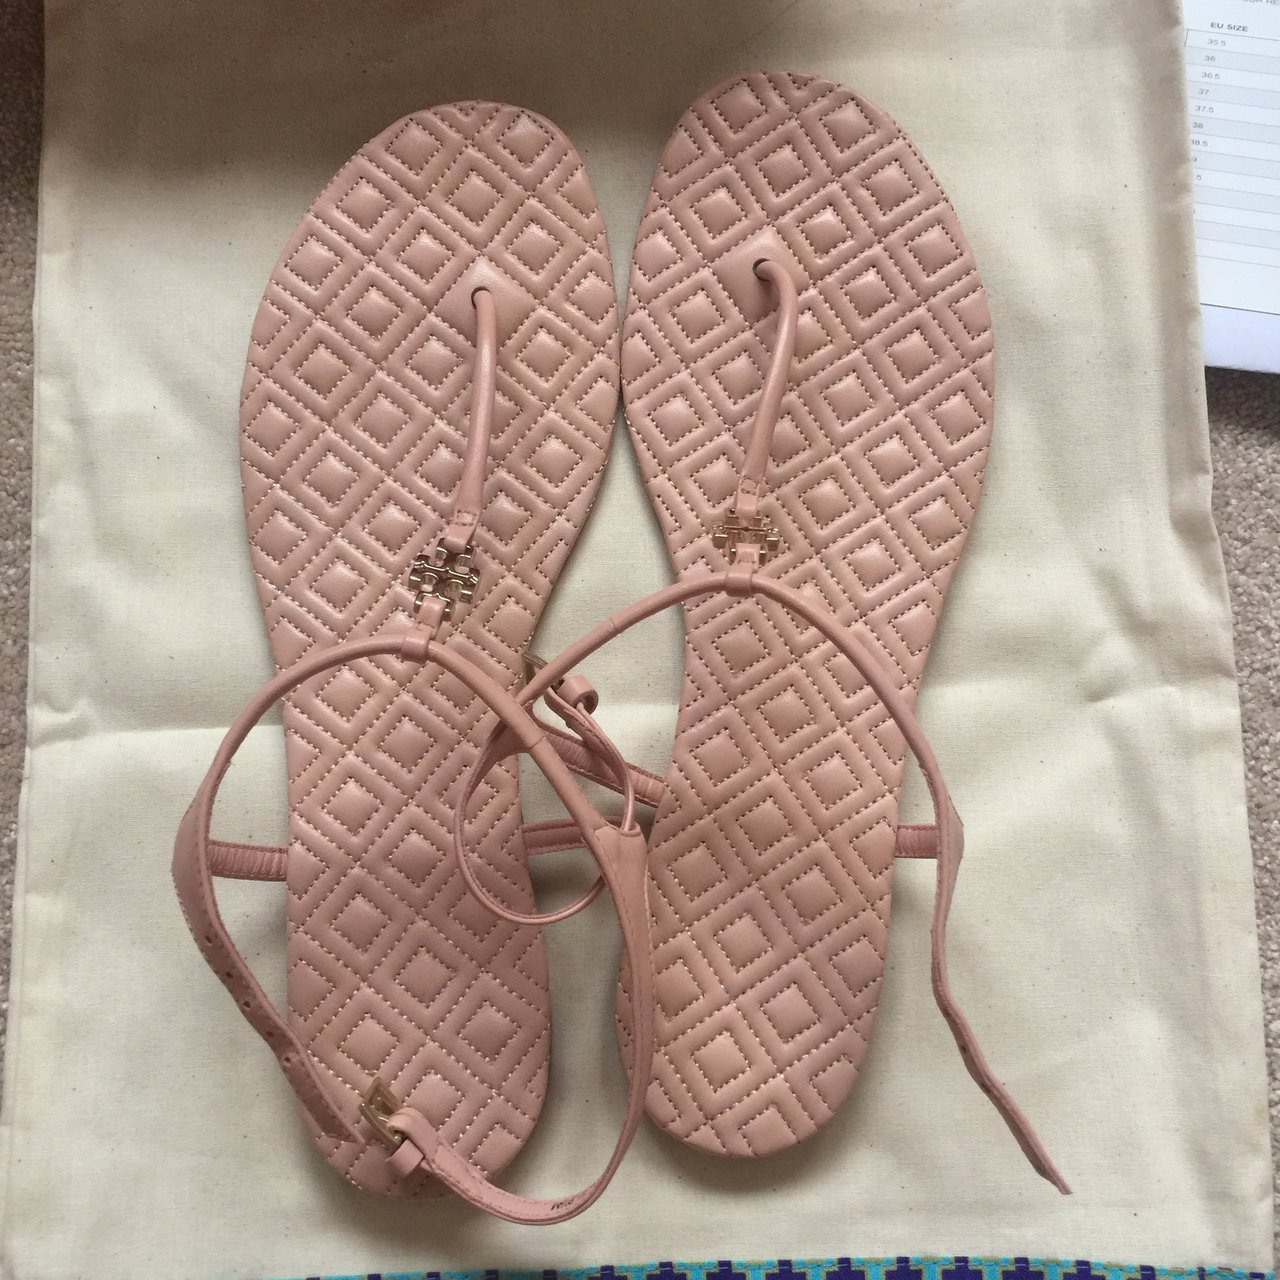 602f6a0adecce Tory Burch Marion quilted sandals. Minimal wear to the sole - Depop